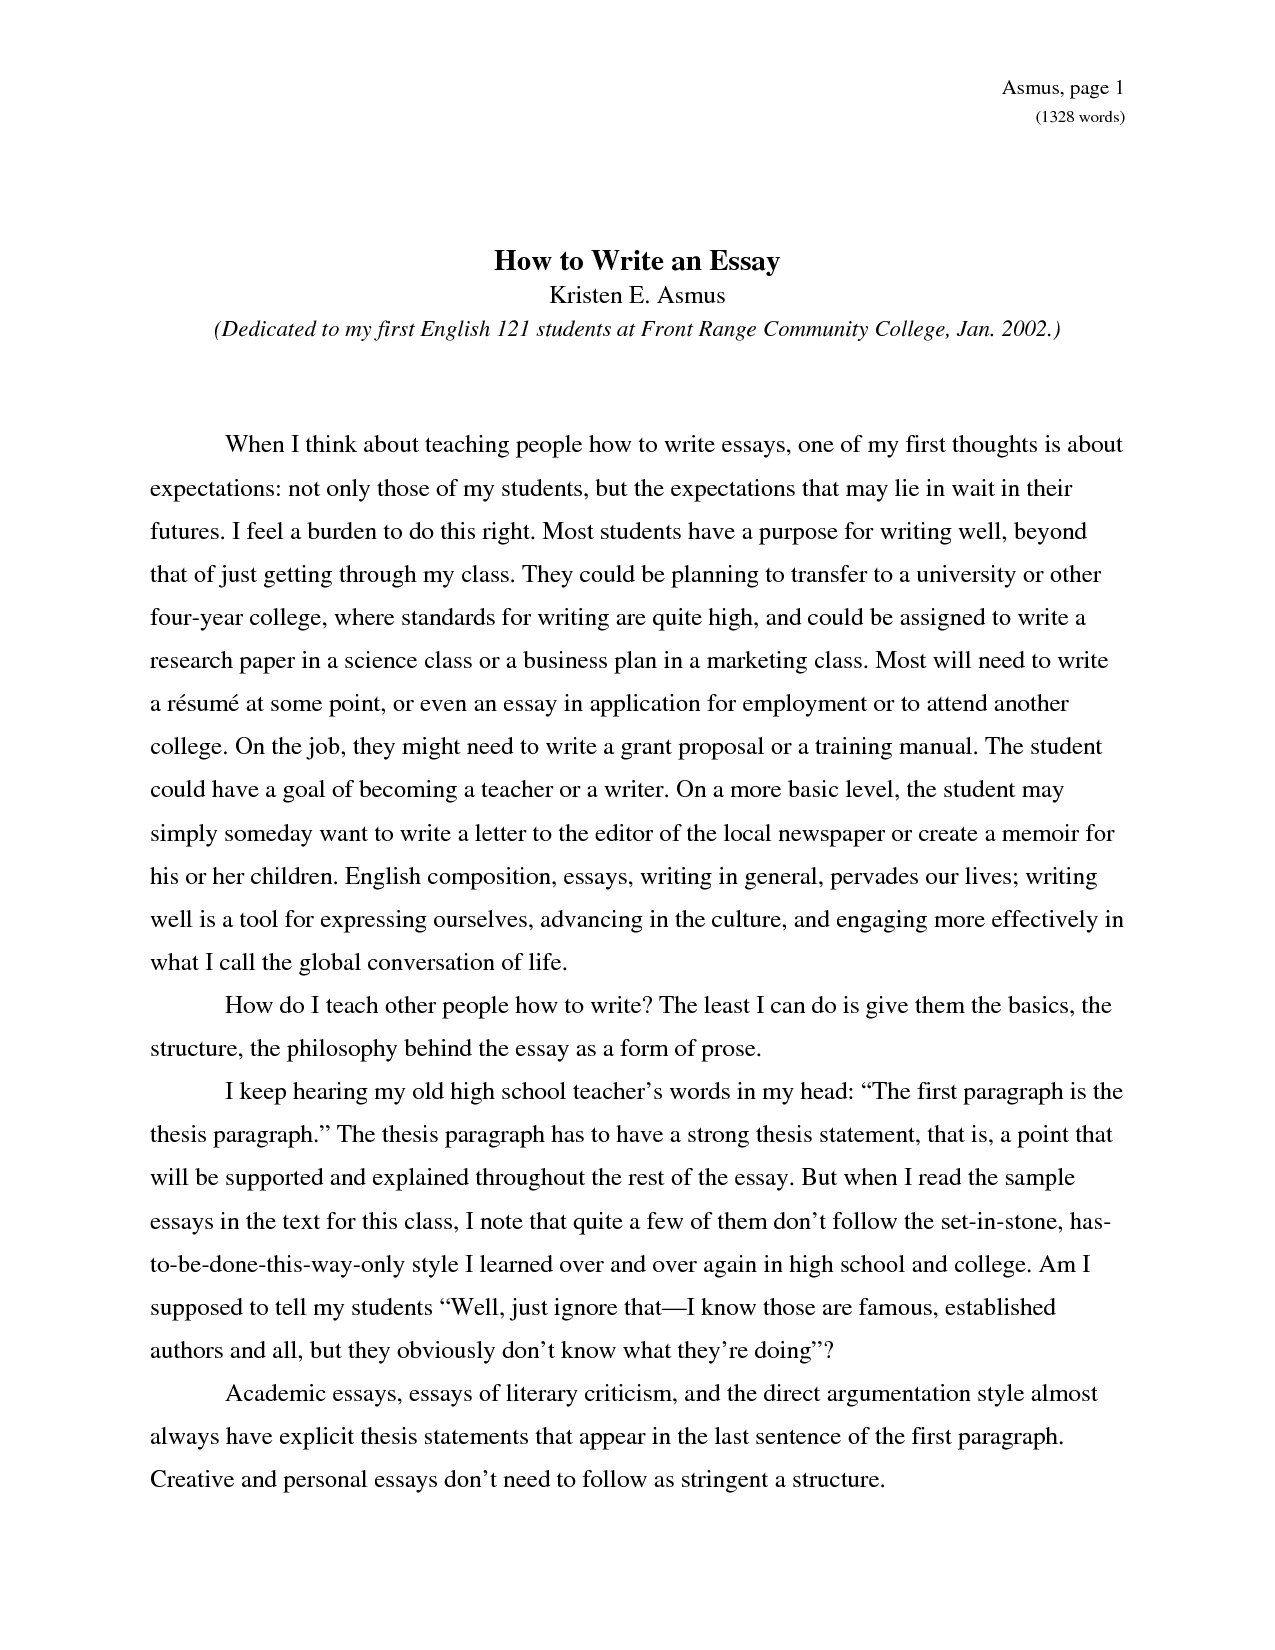 How to write and essay